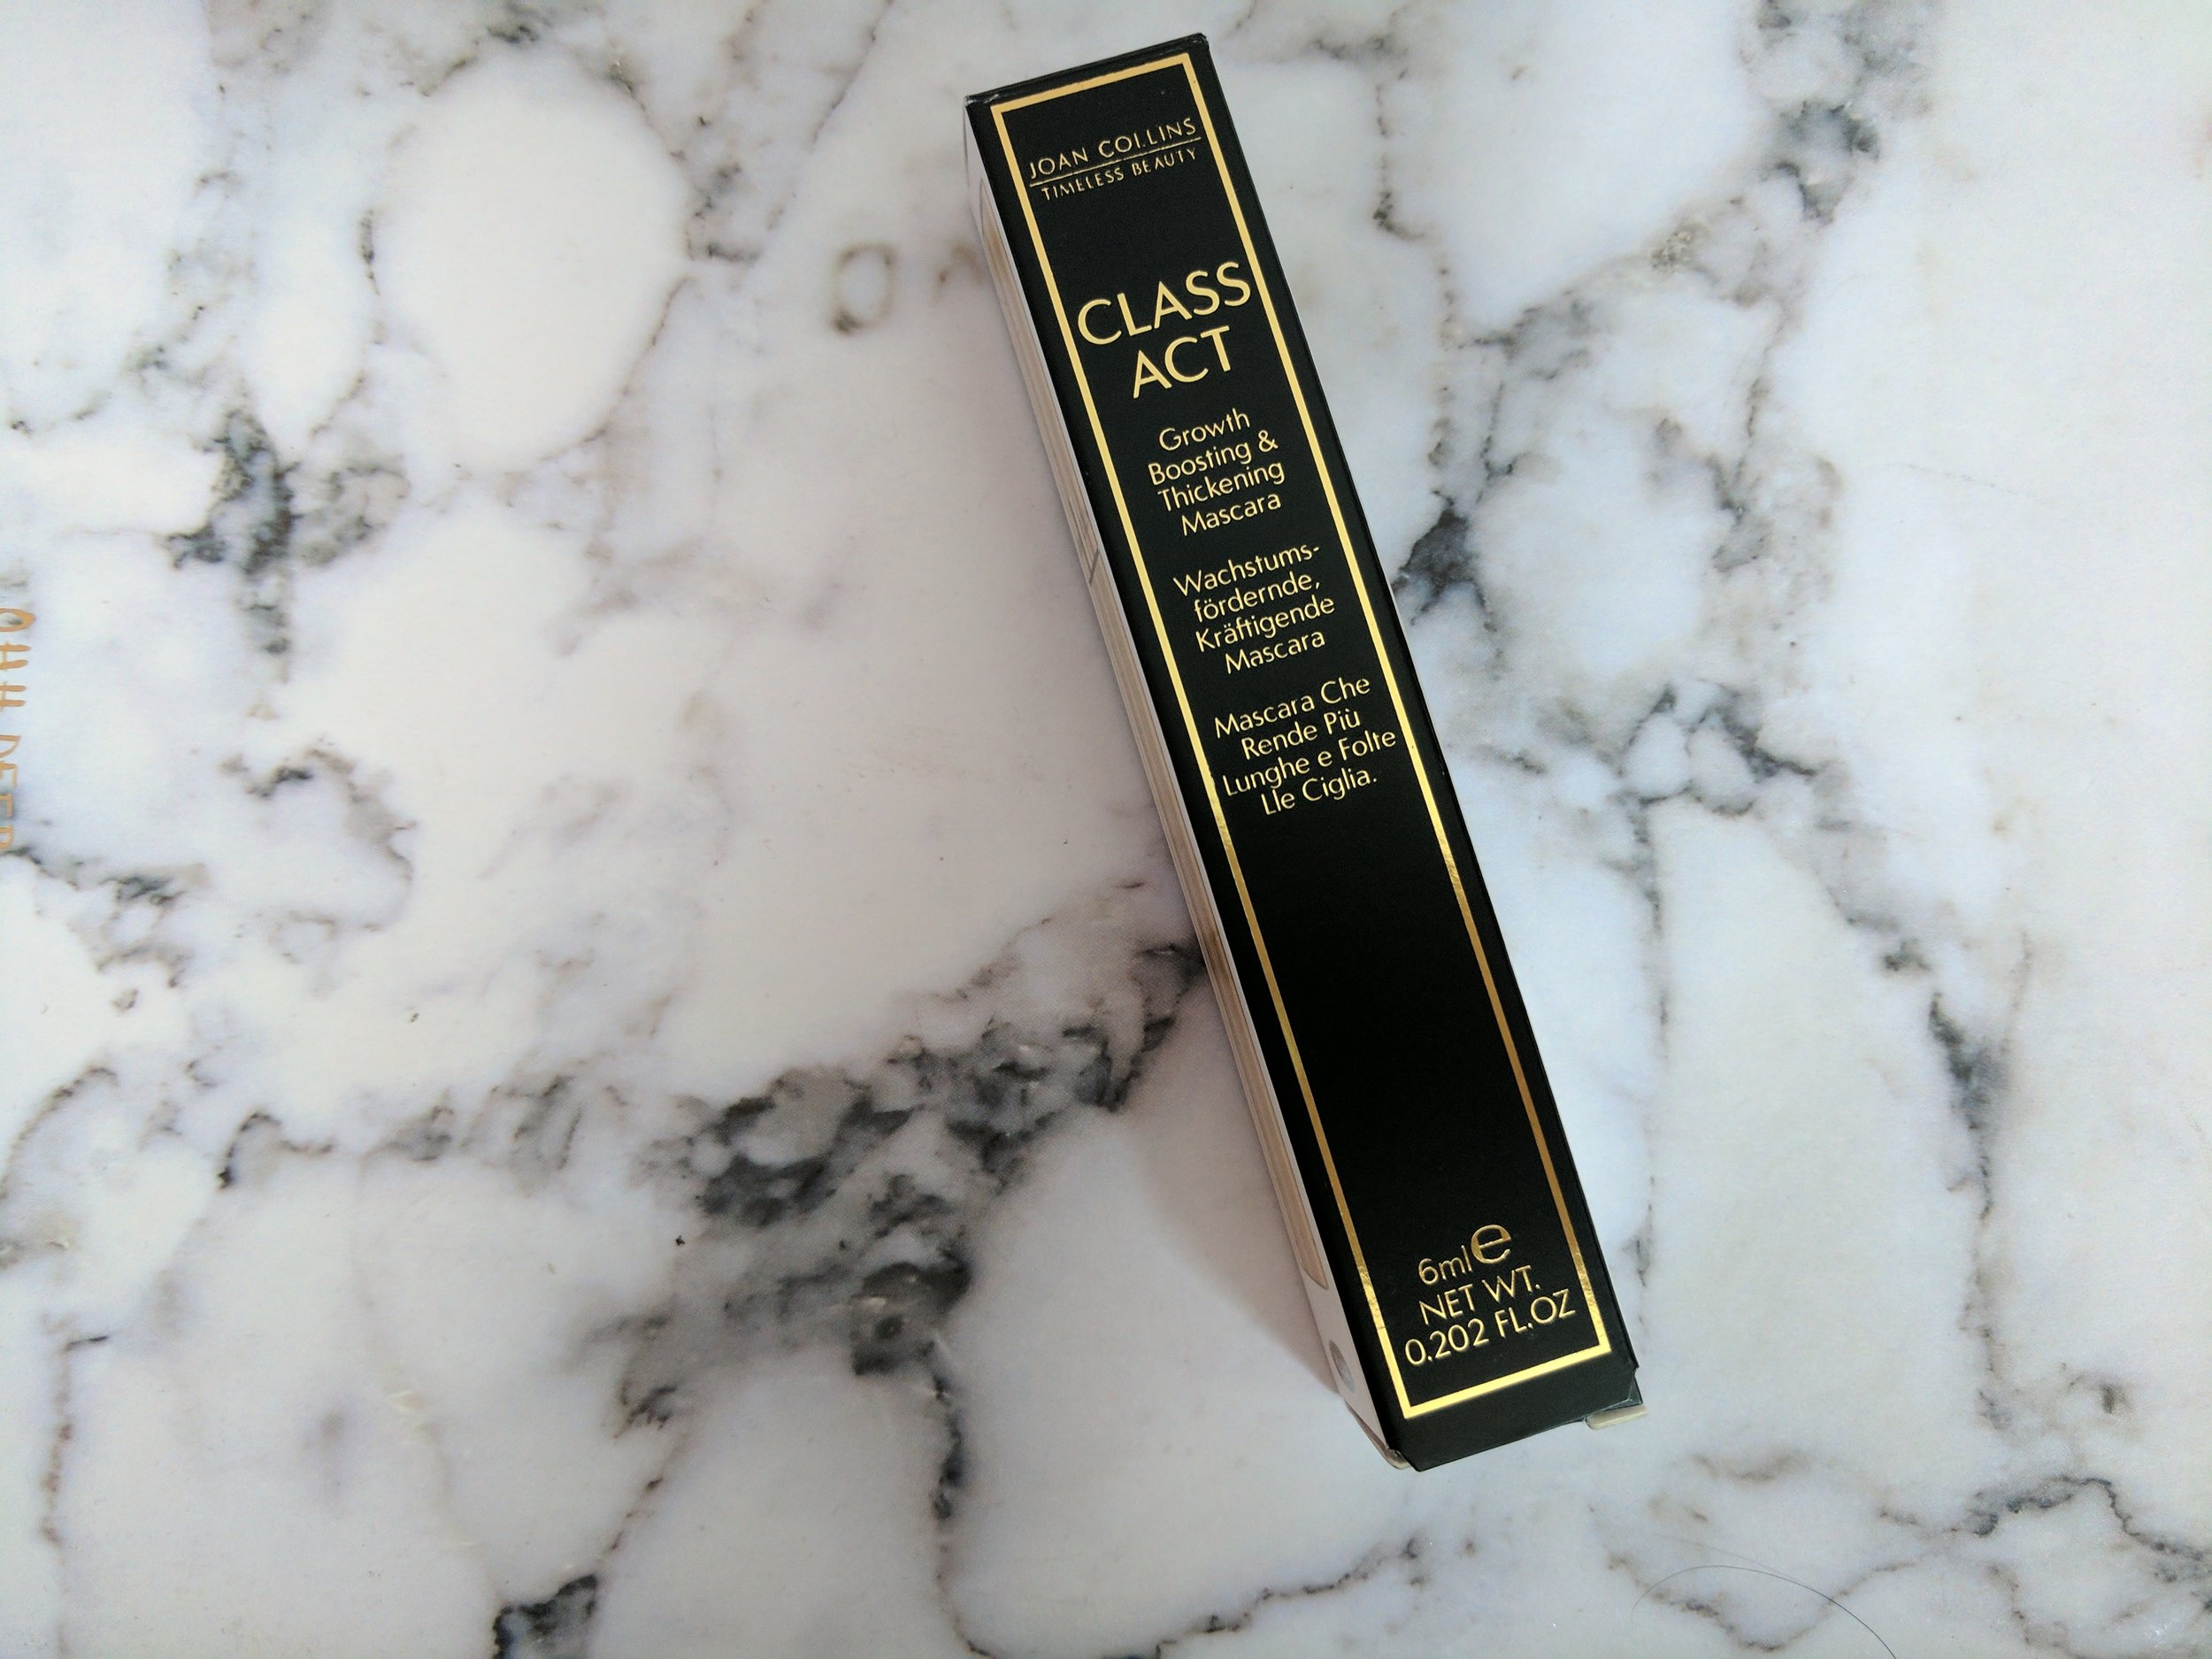 beauty blogger reviews joan colins class act mascara